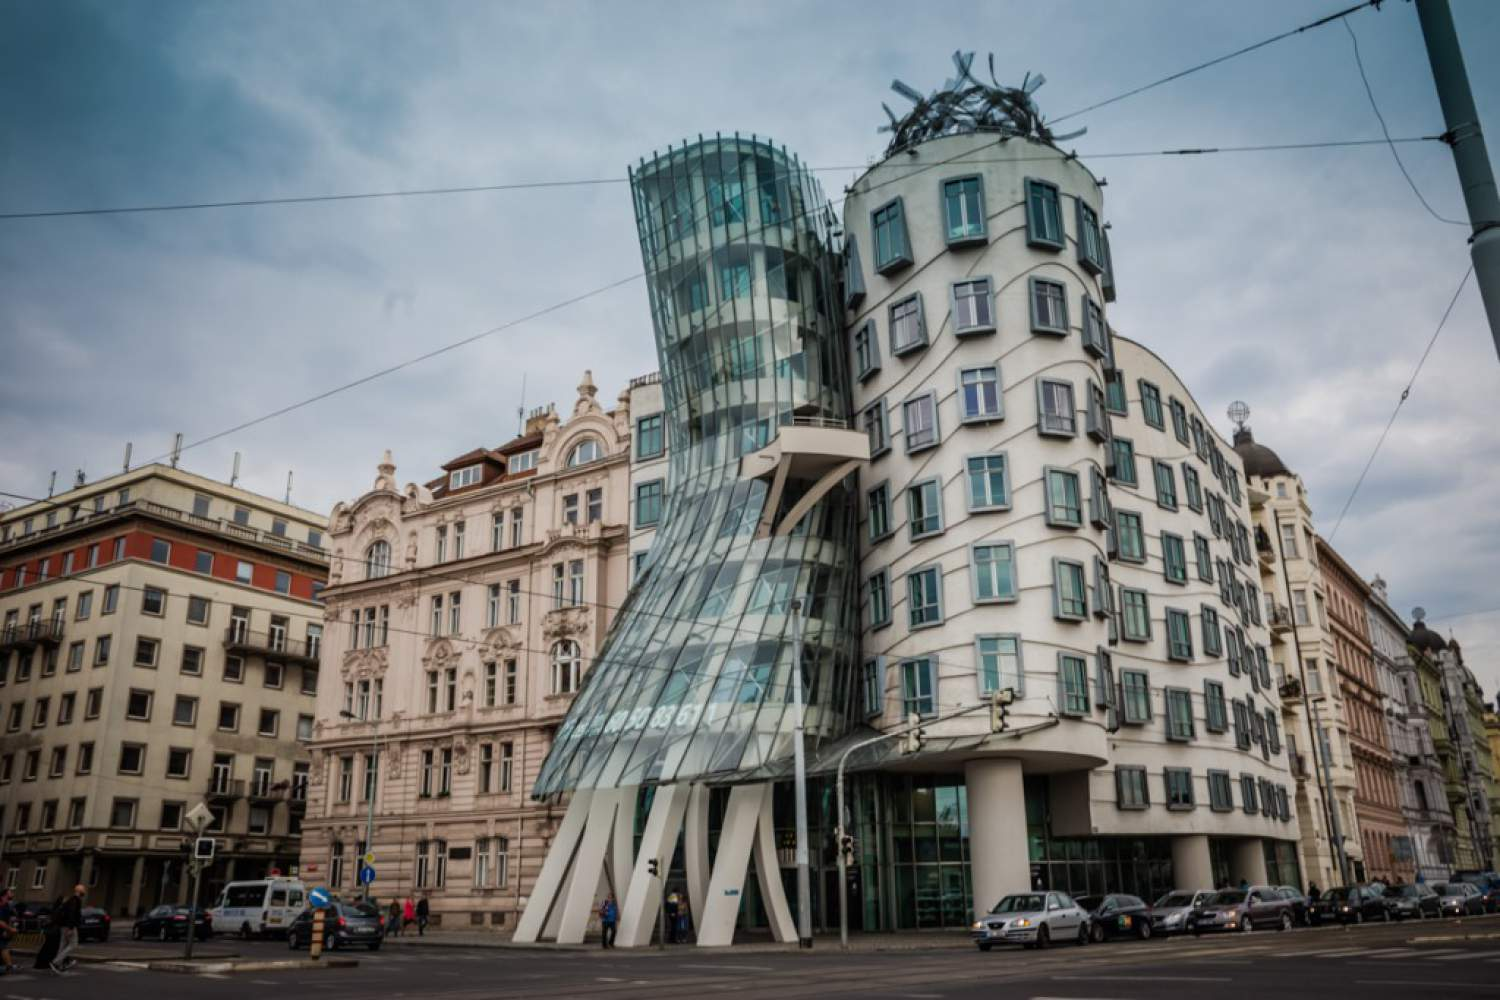 The dancing house get to be seen in the tramway, Prague